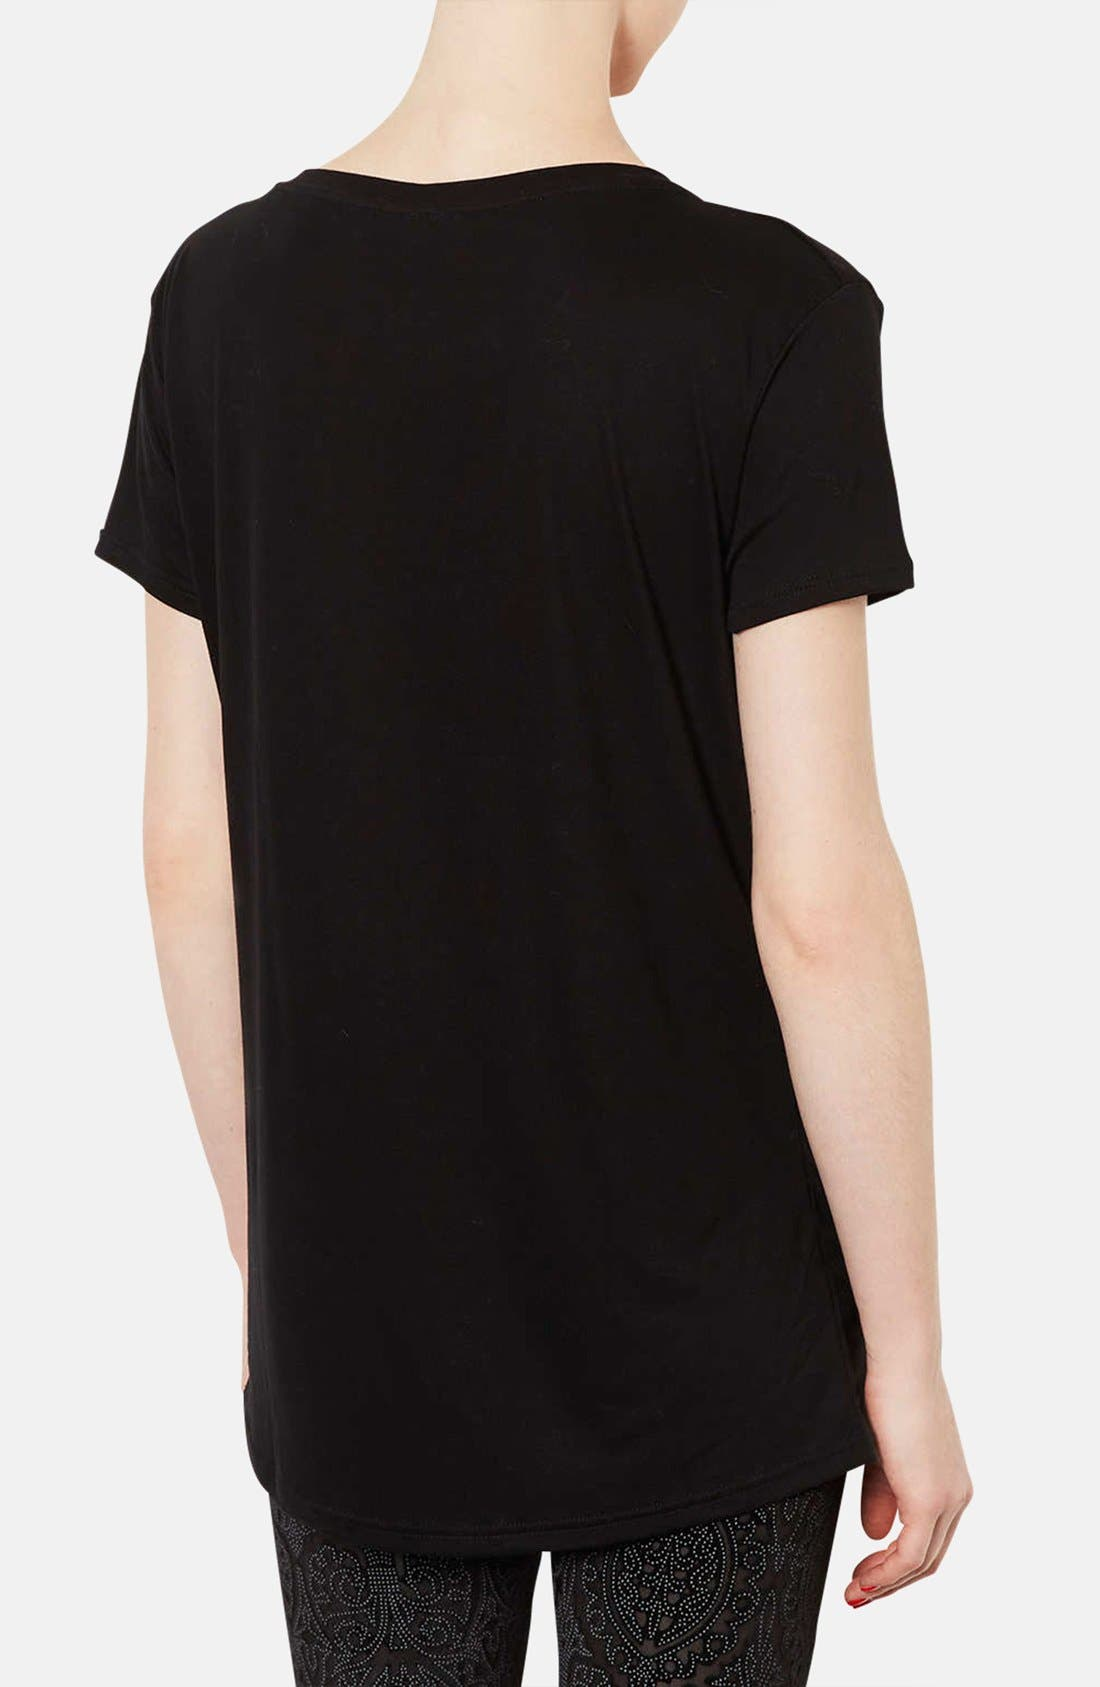 TOPSHOP, V-Neck Tee, Alternate thumbnail 3, color, 001